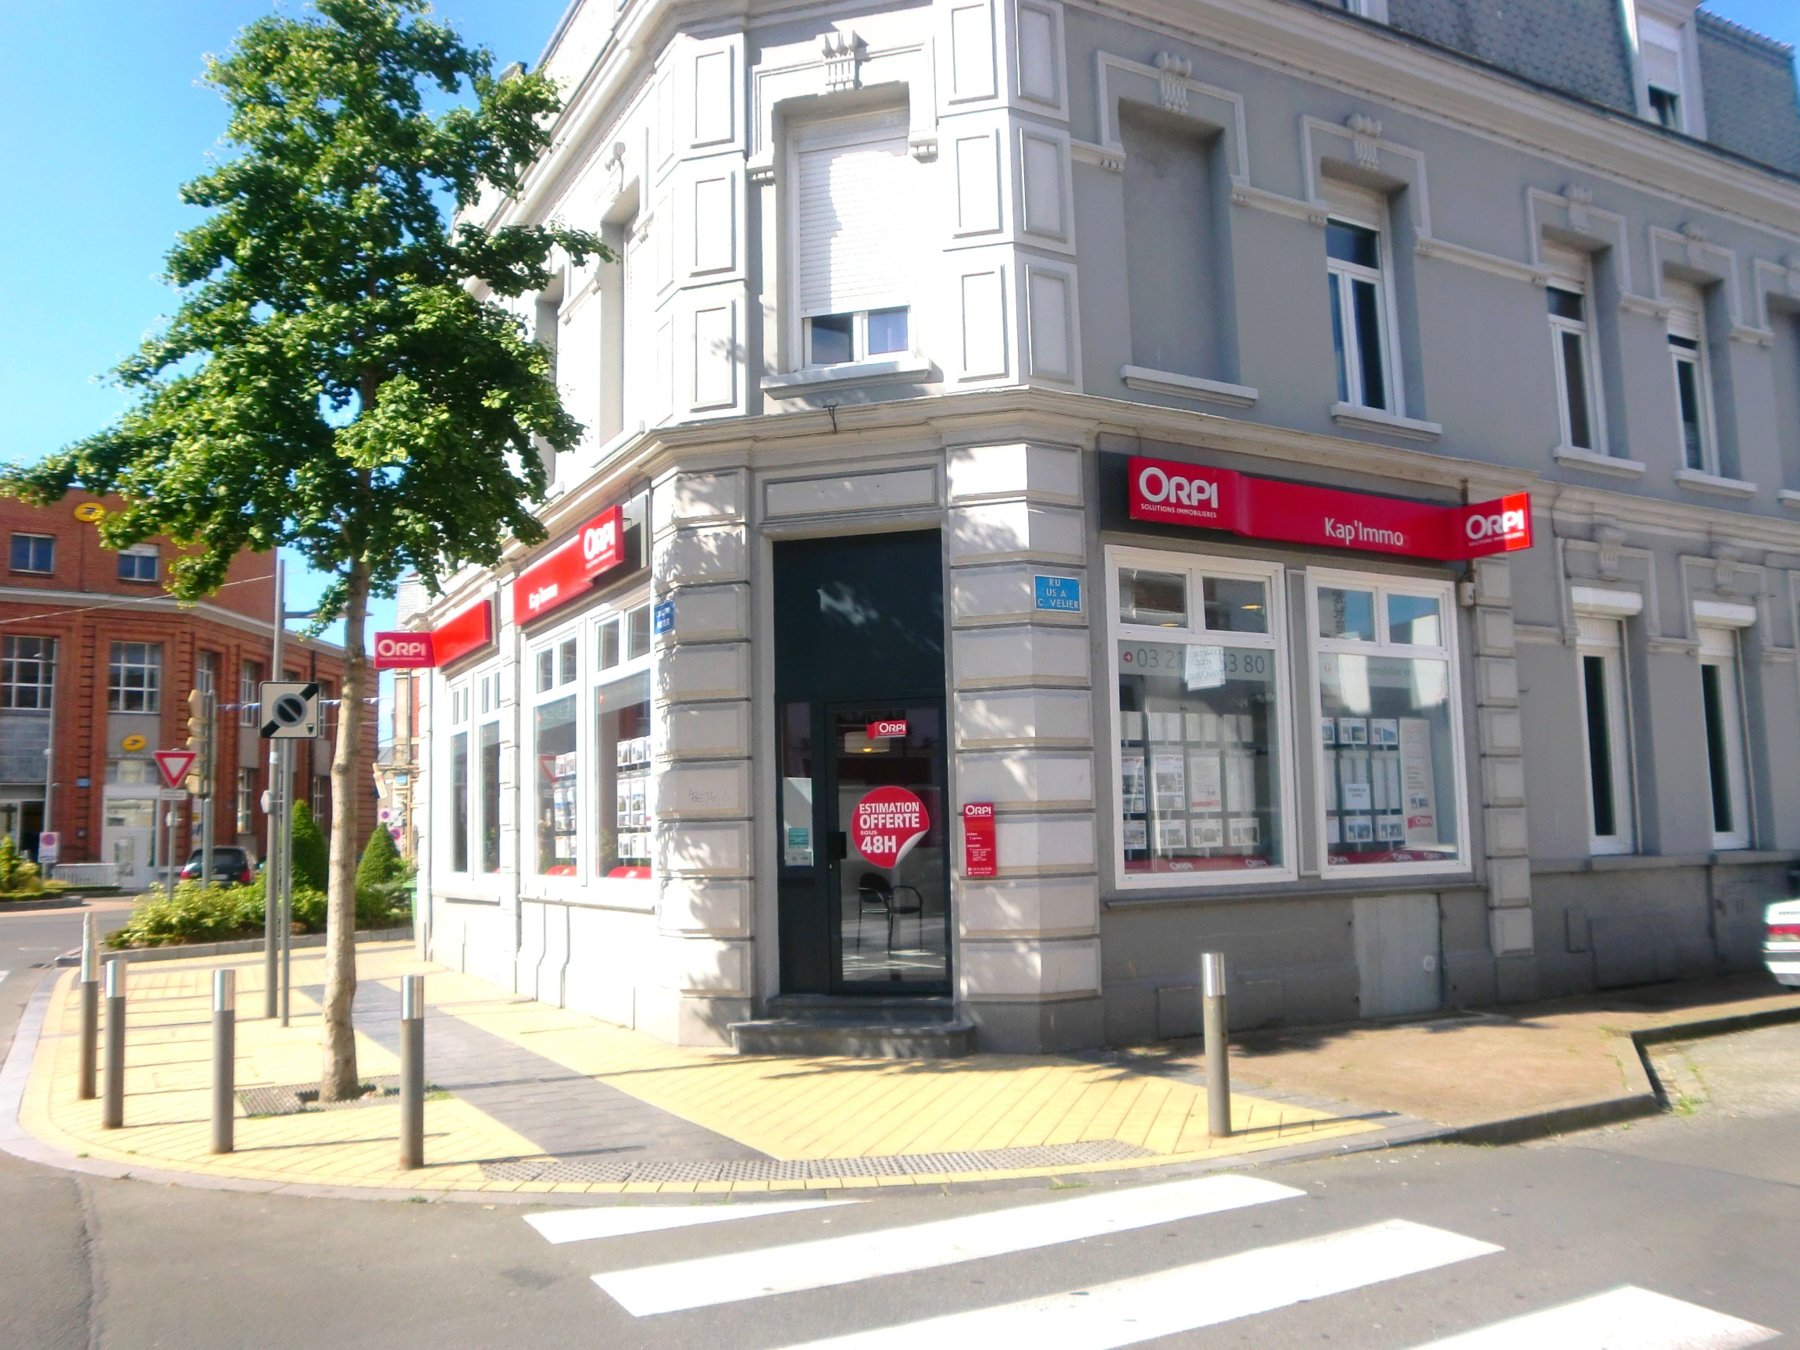 Votre agence orpi kap 39 immo kap 39 immo orpi for Agence immobiliere calais